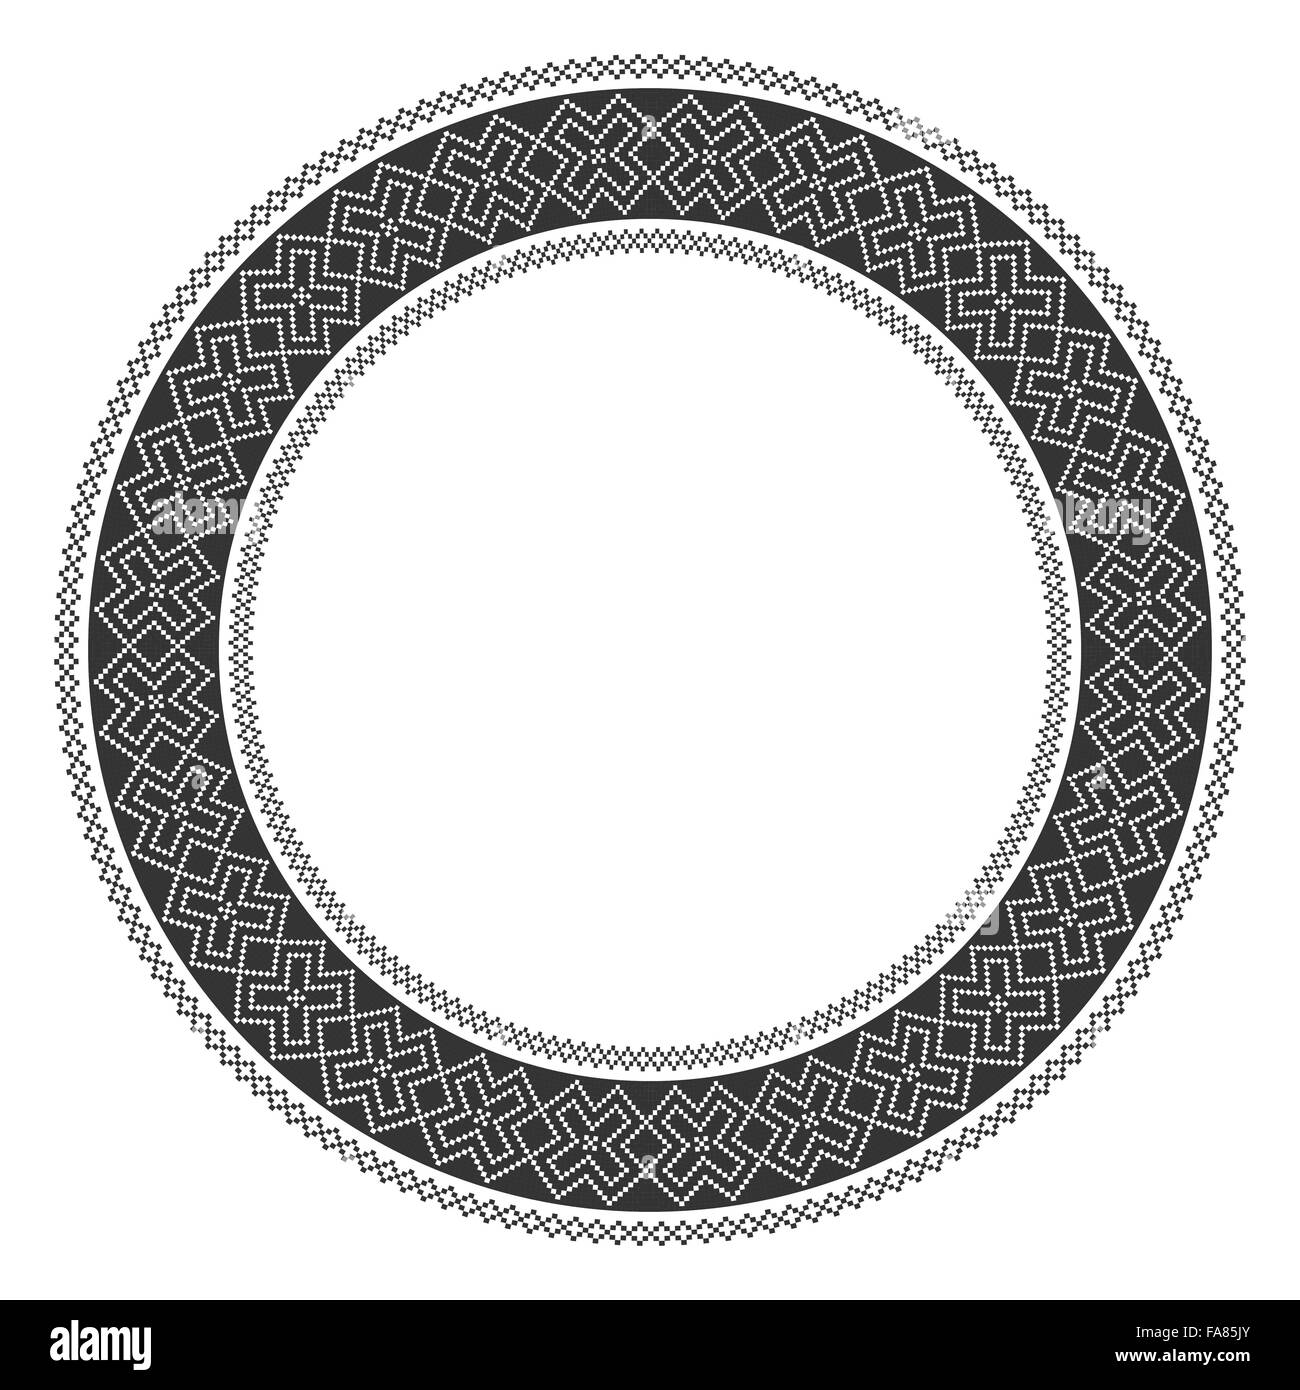 Vector illustration of traditional Slavic round embroidered pattern for your design - Stock Image